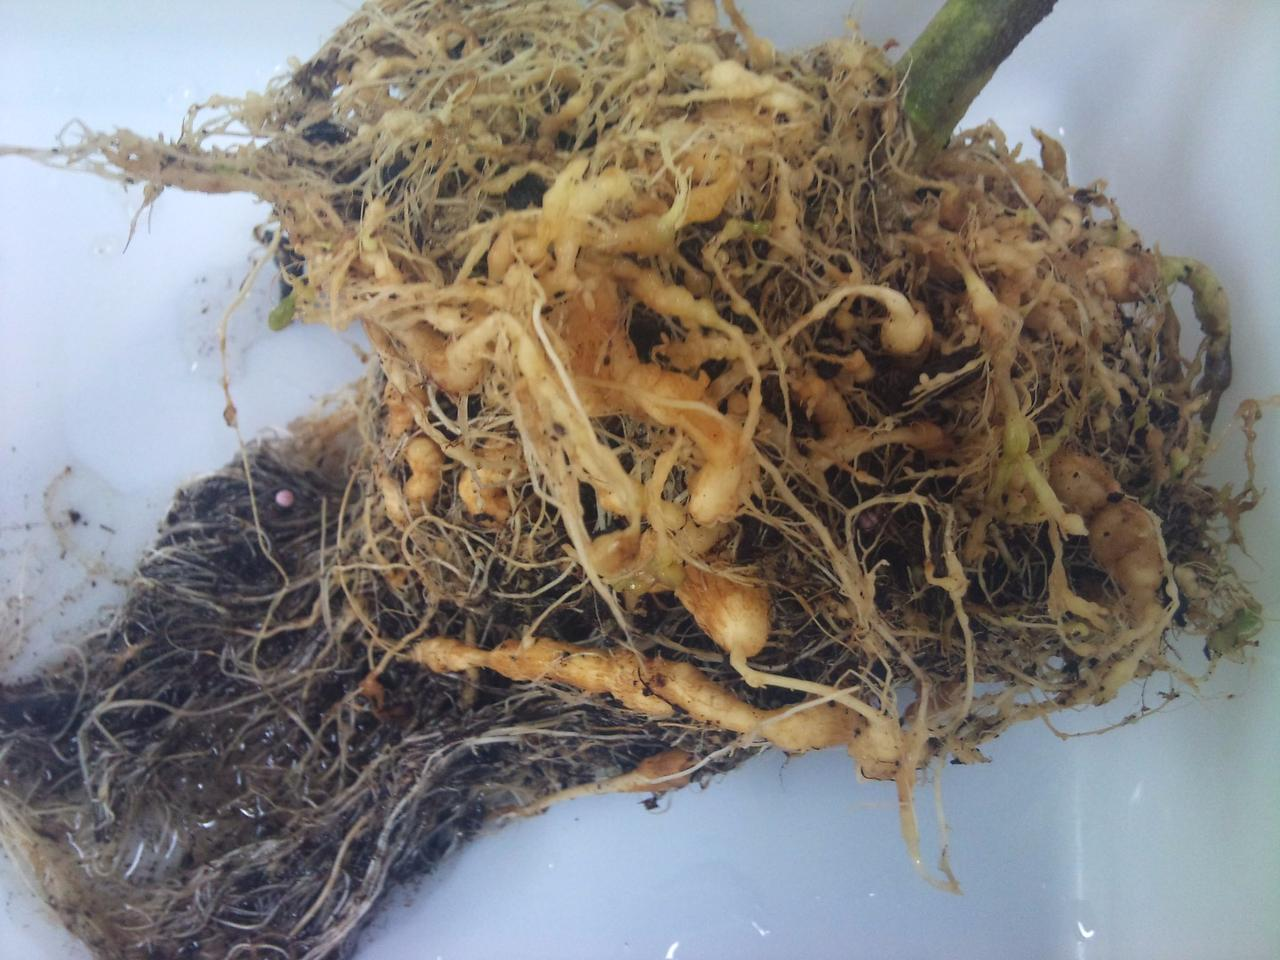 The swollen tell-tale signs of a tomato plant infected with the Southern root-knot nematode, an asexual parasitic worm that is the bane of farmers